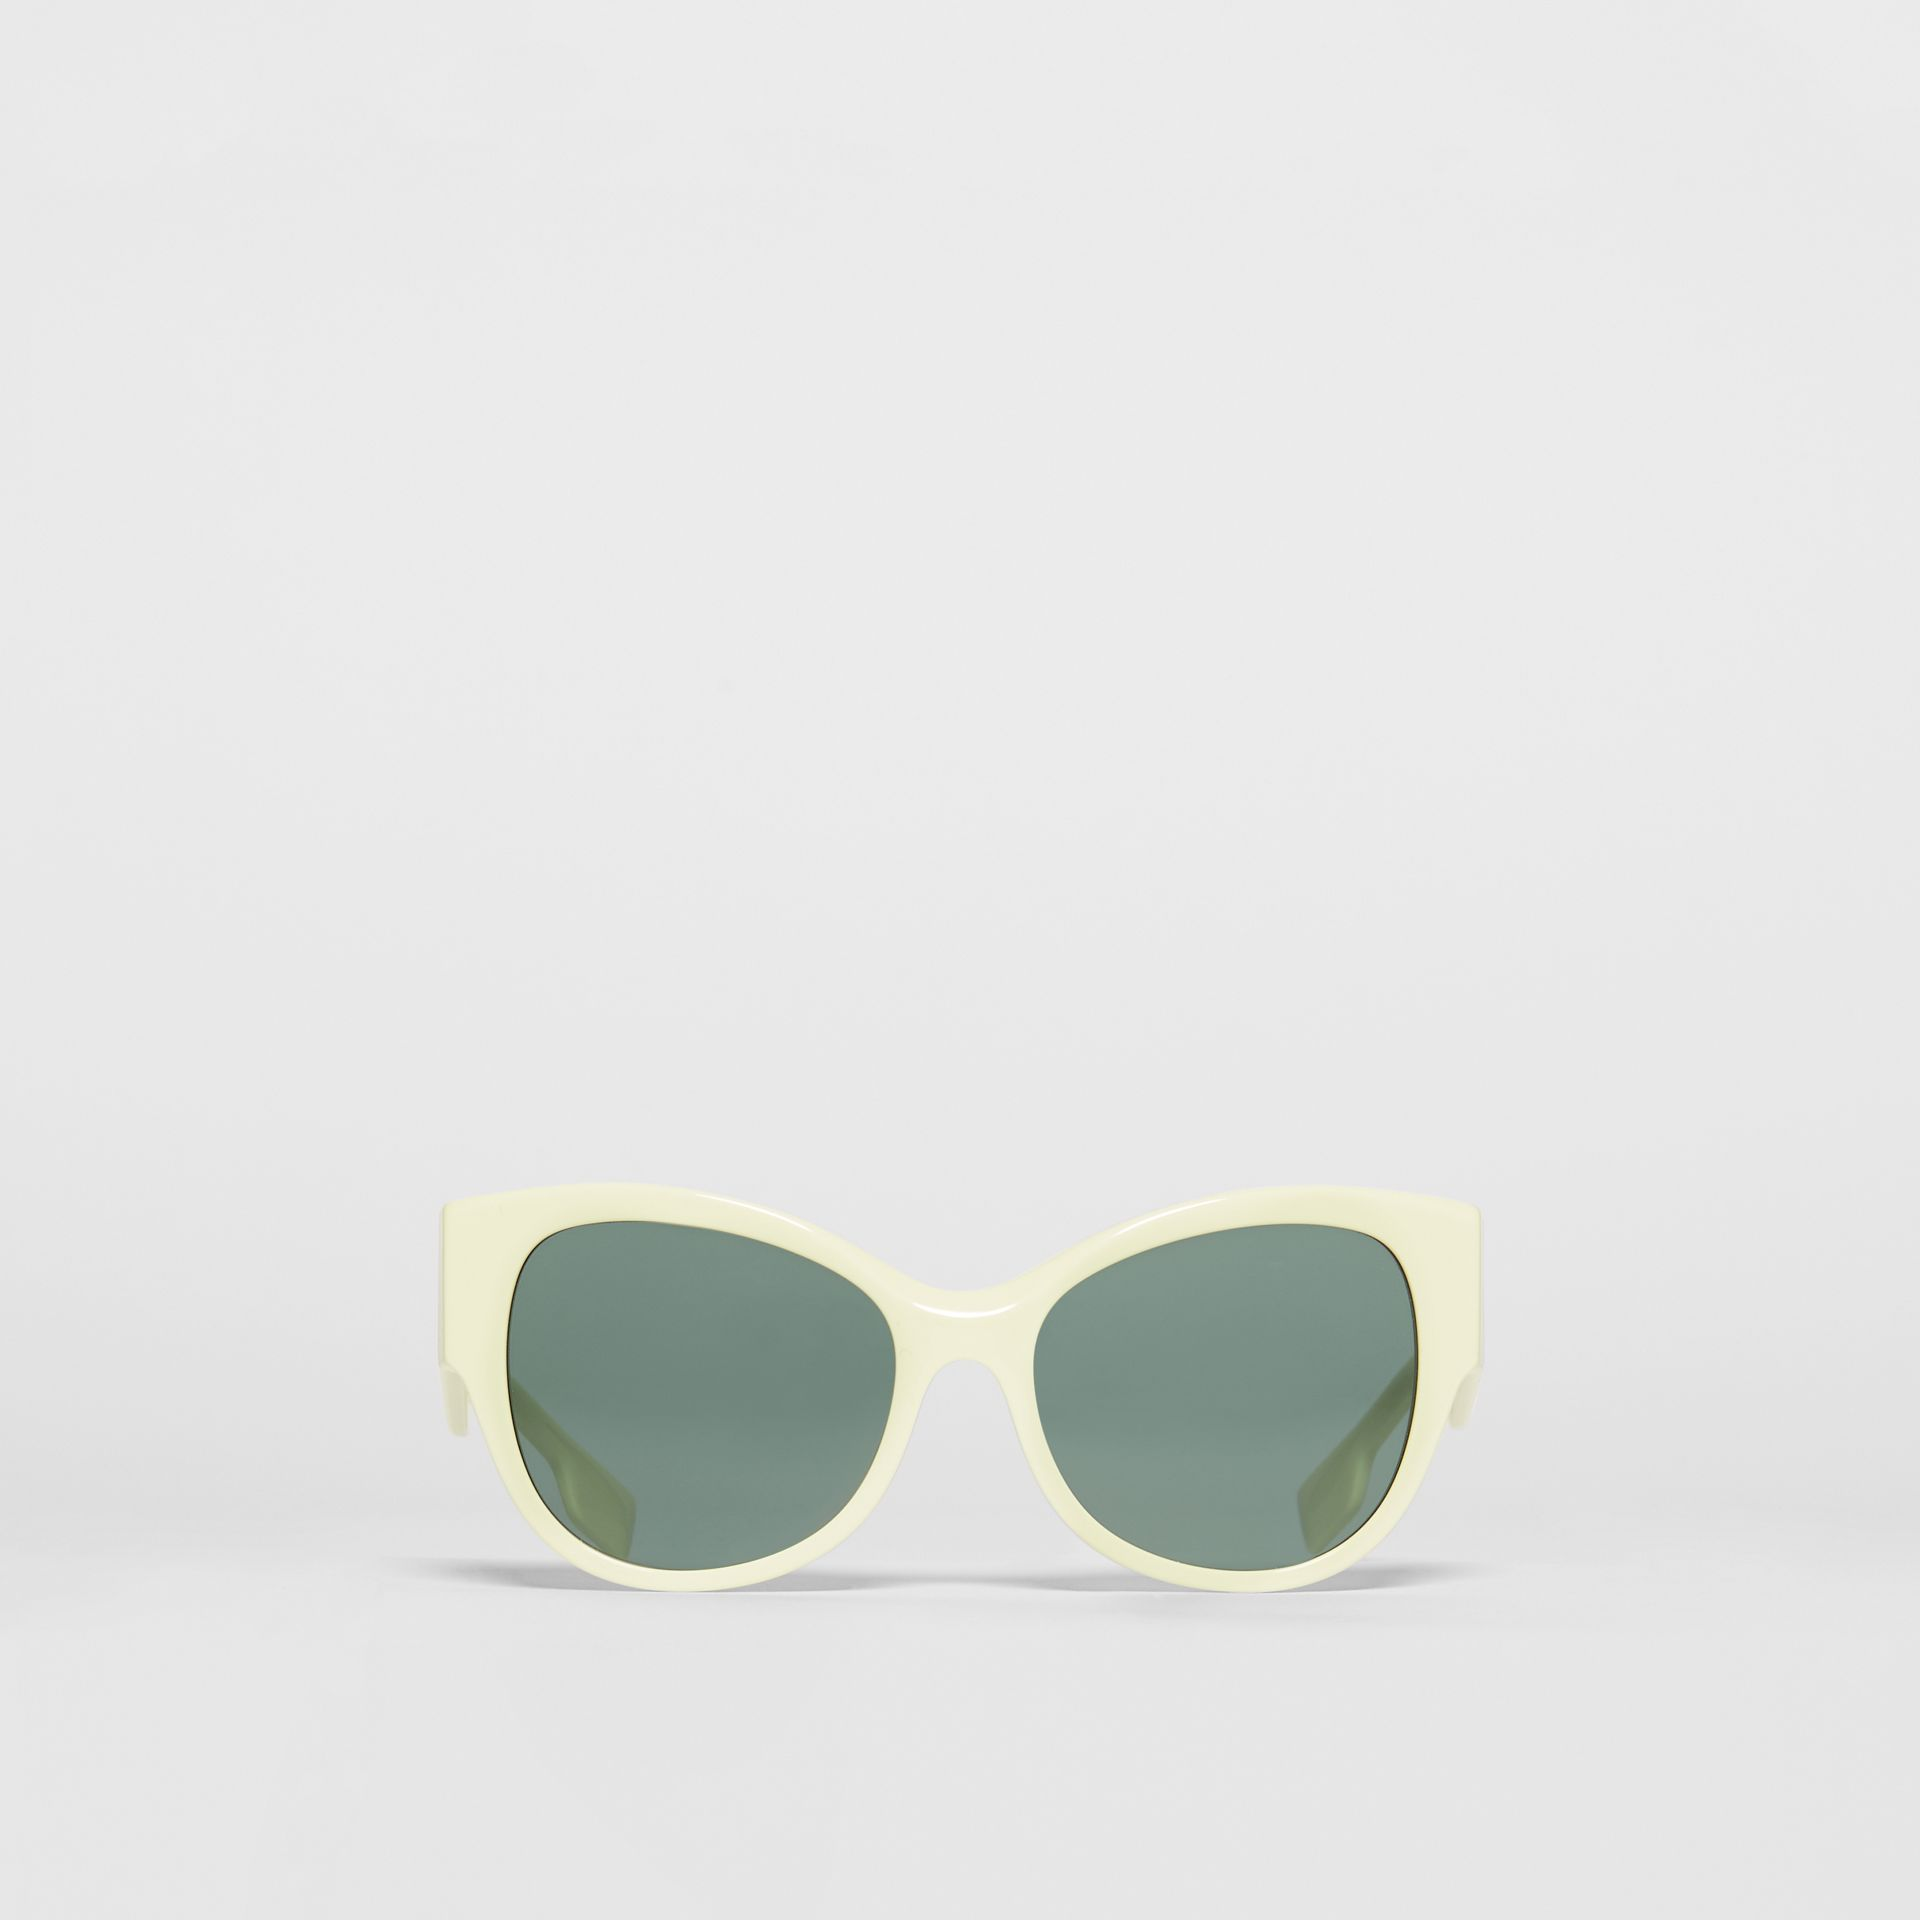 Butterfly Frame Sunglasses in Pistachio - Women | Burberry - gallery image 0